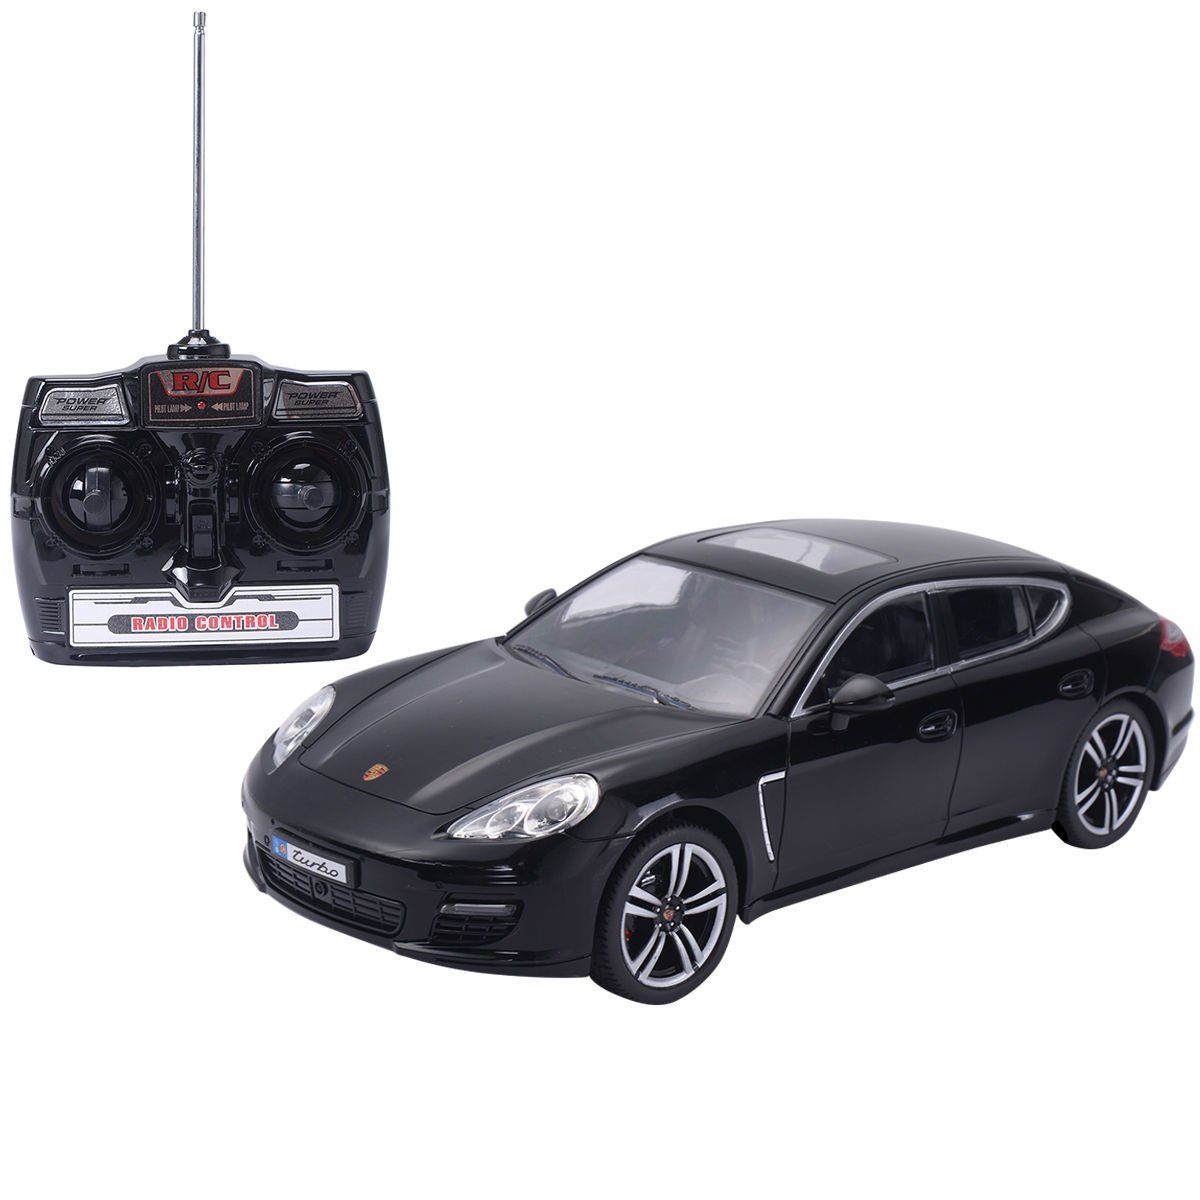 Cheap Porsche Panamera Model Car, Find Porsche Panamera